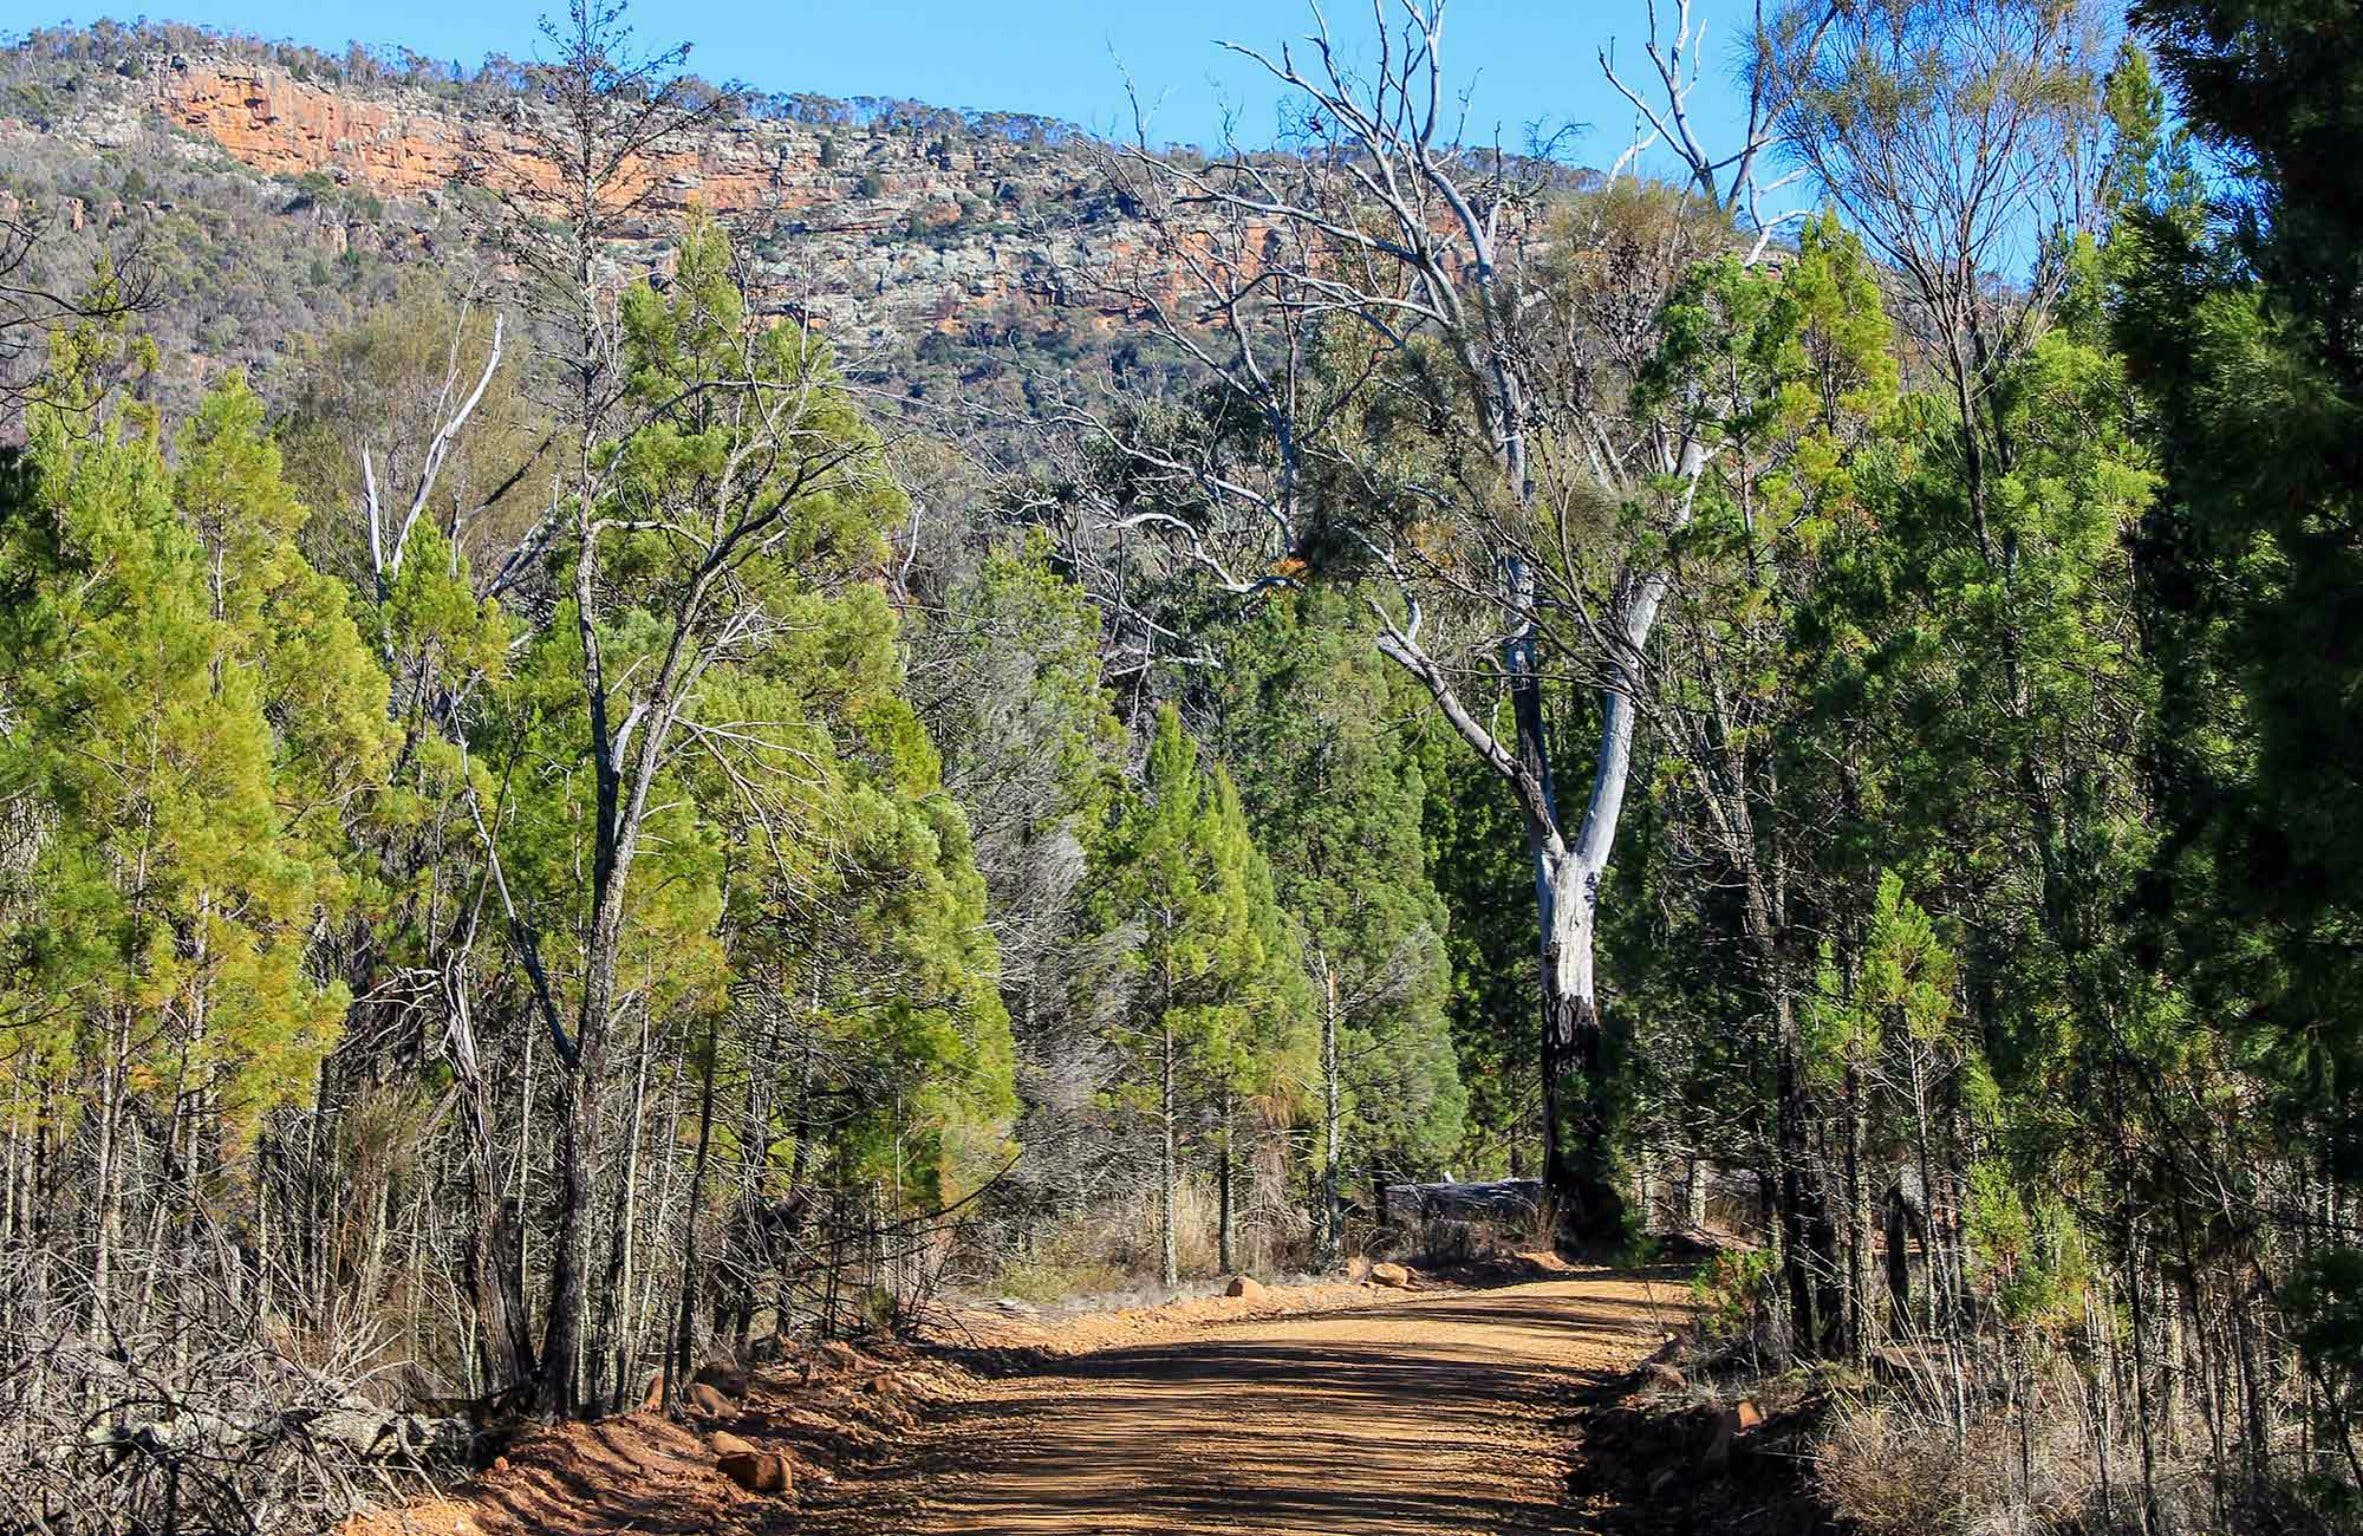 Weddin Gap to Black Spring Loop Trail - Accommodation Search